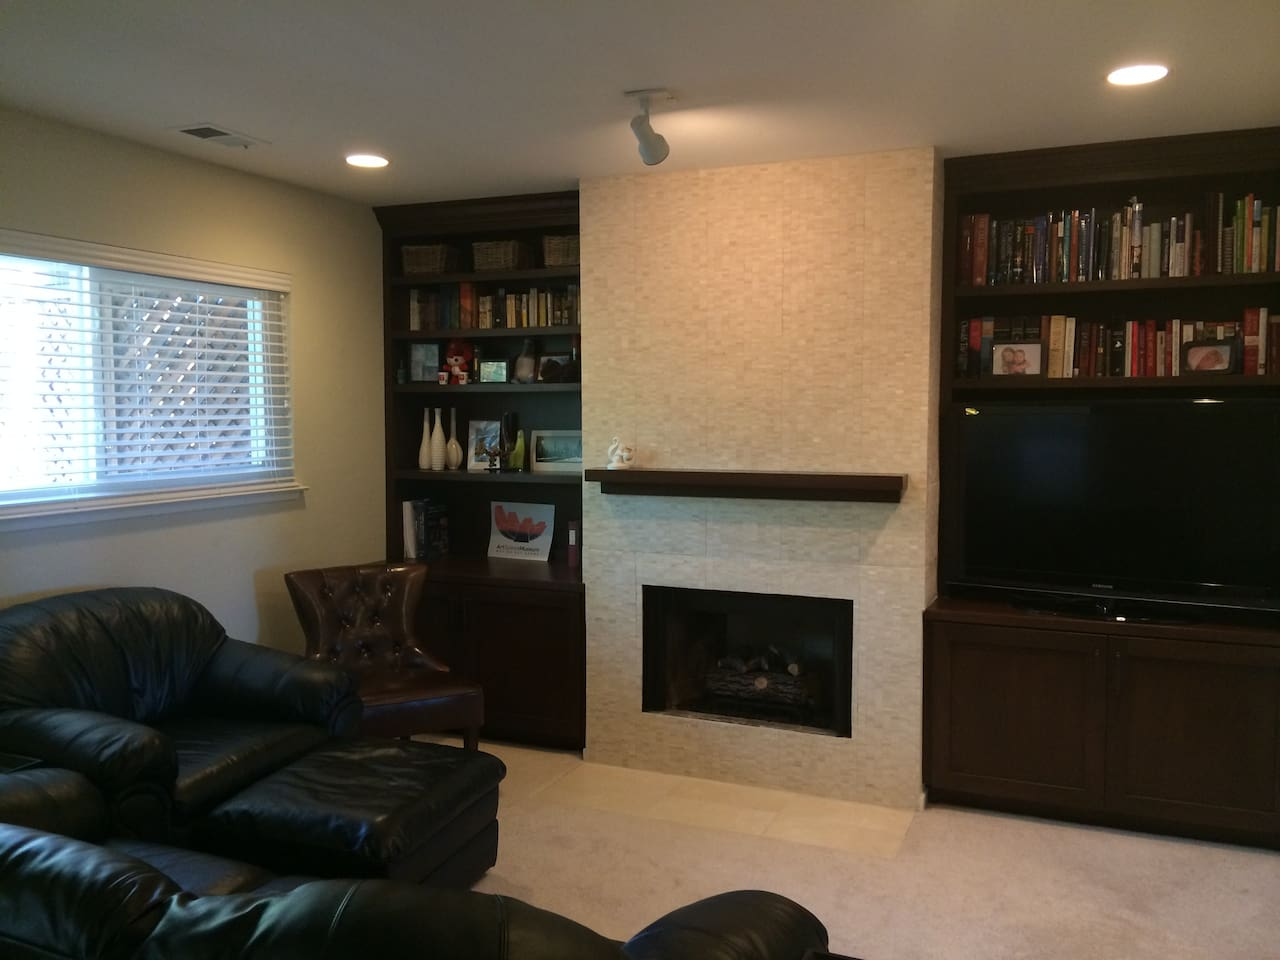 Living Room - Large TV, comfy seating.